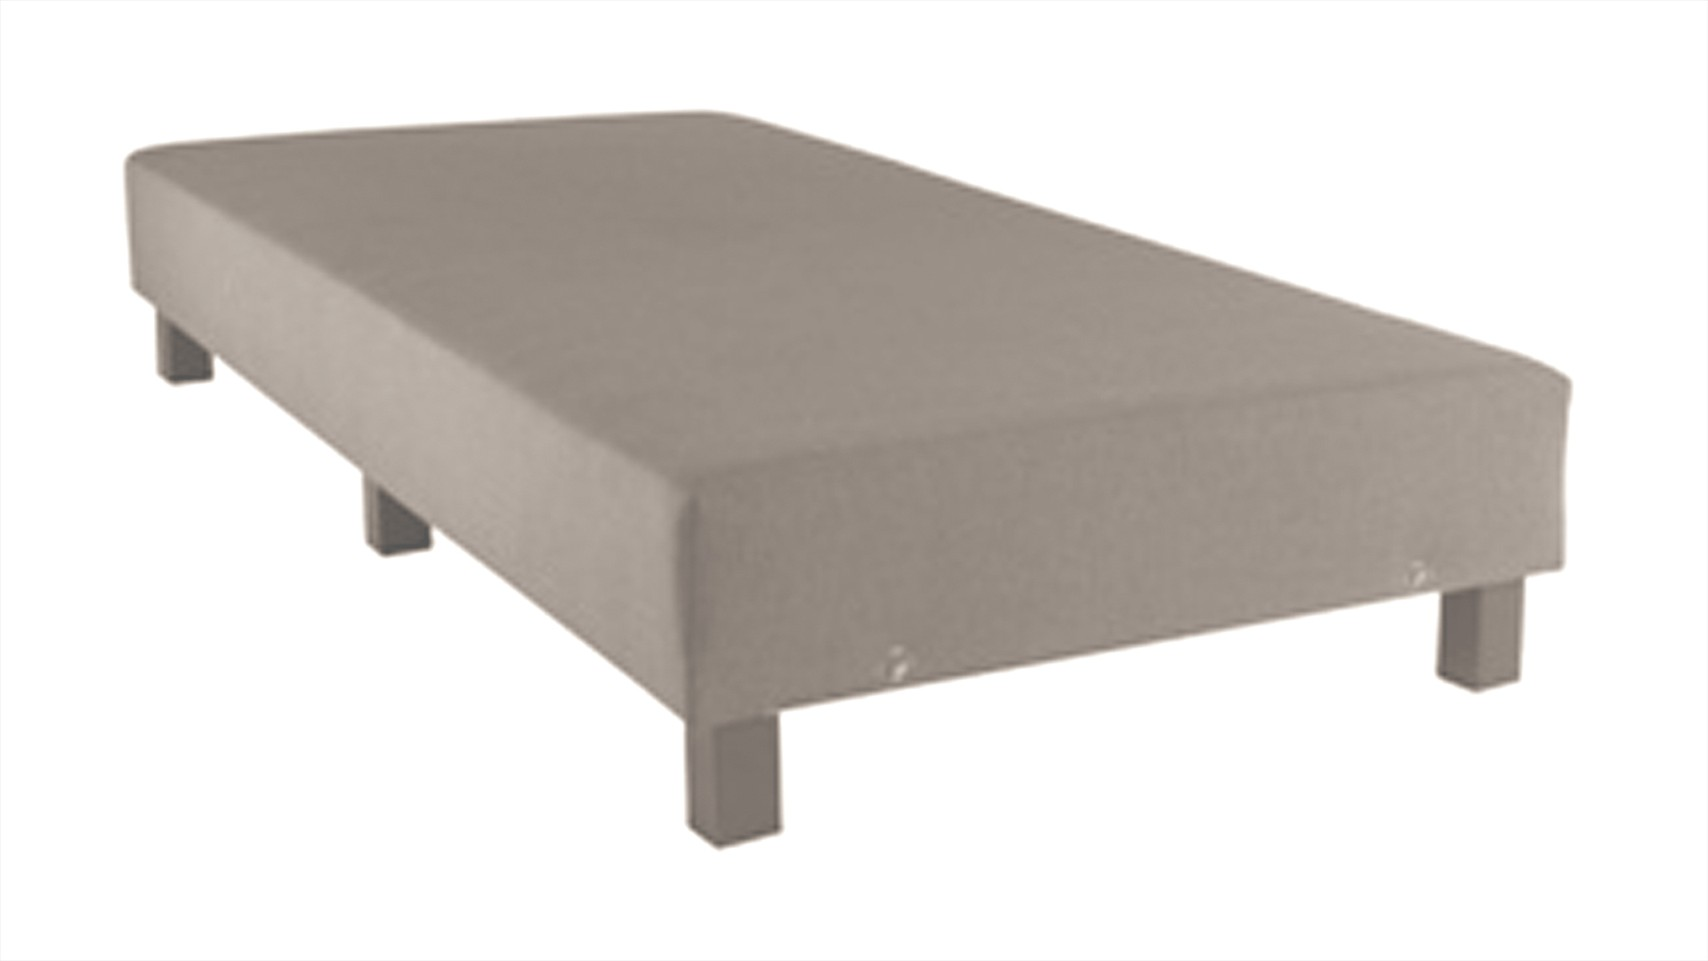 Boxspring vlakke boxsprings boxsprings online bedden shop